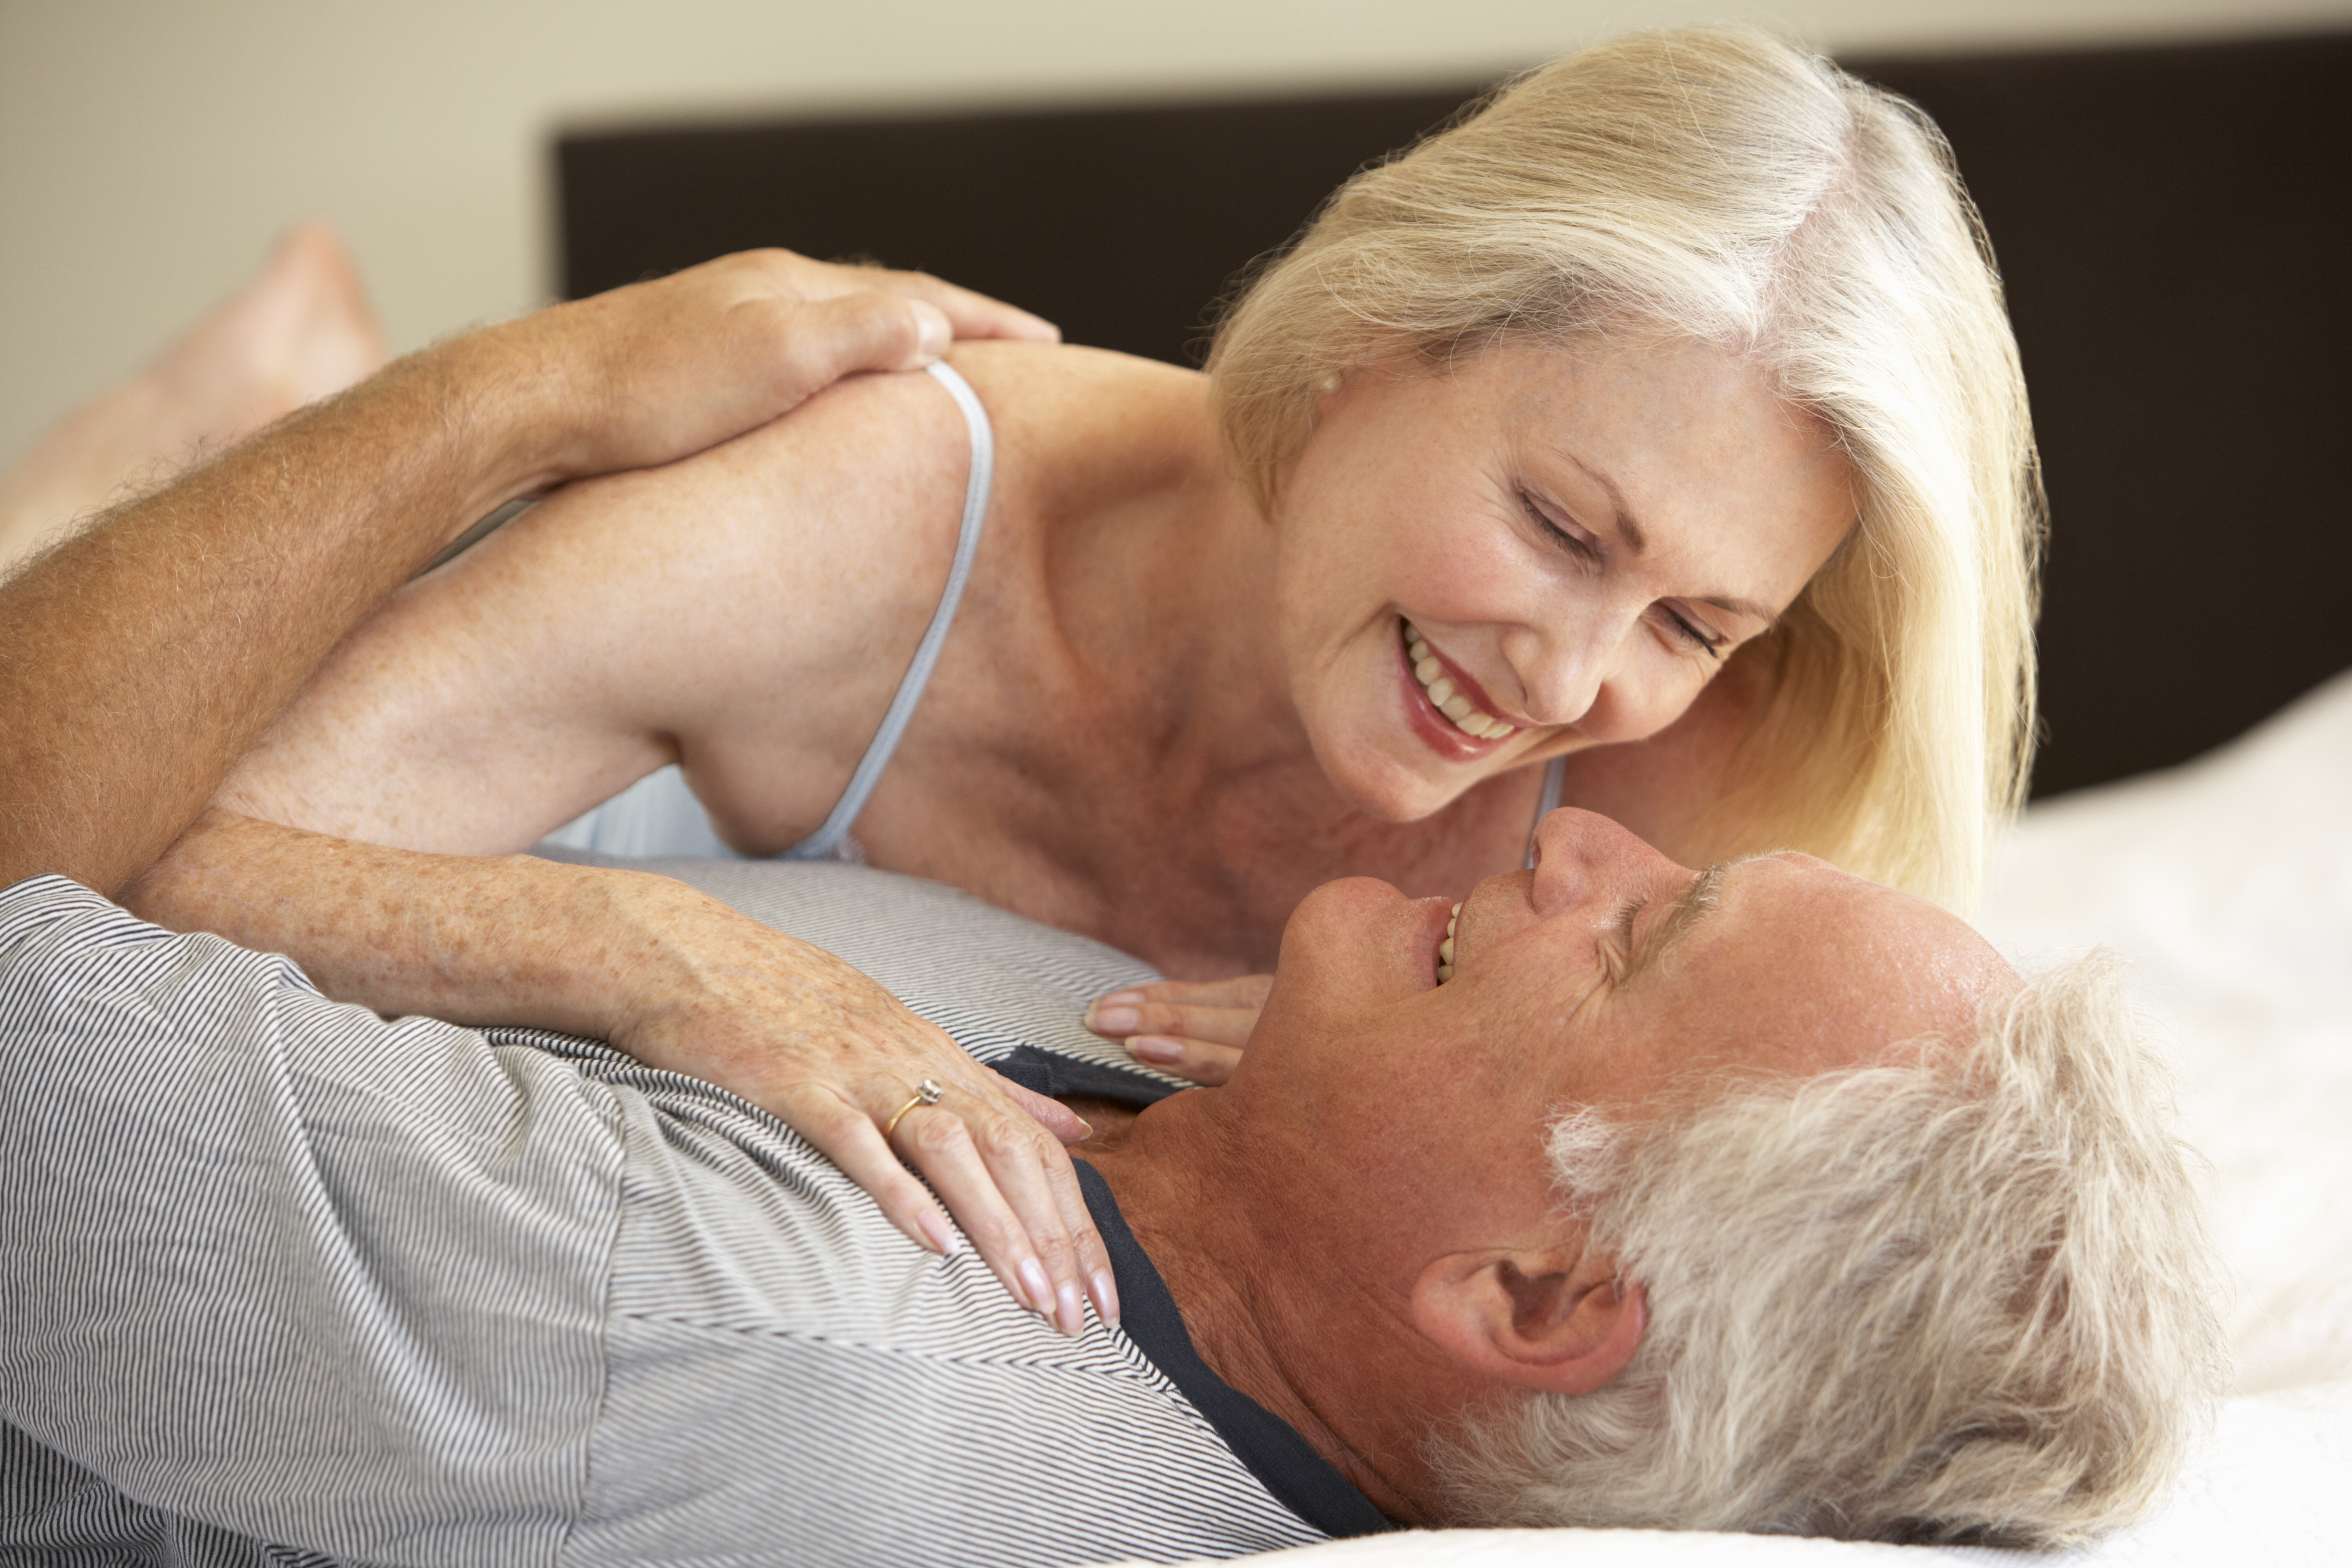 Sex: The Natural Elixir For Aging